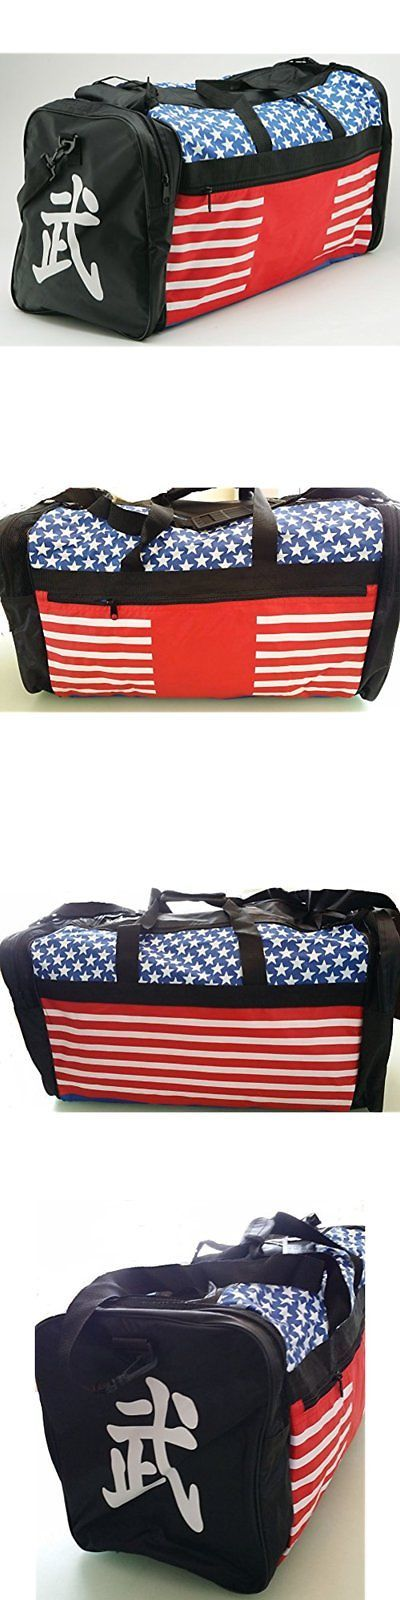 Other Combat Sport Protection 179783: Taekwondo Sparring Gear Martial Arts Gear Equipment Bag Tae Kwon Do Karate Mma -> BUY IT NOW ONLY: $53.99 on eBay!